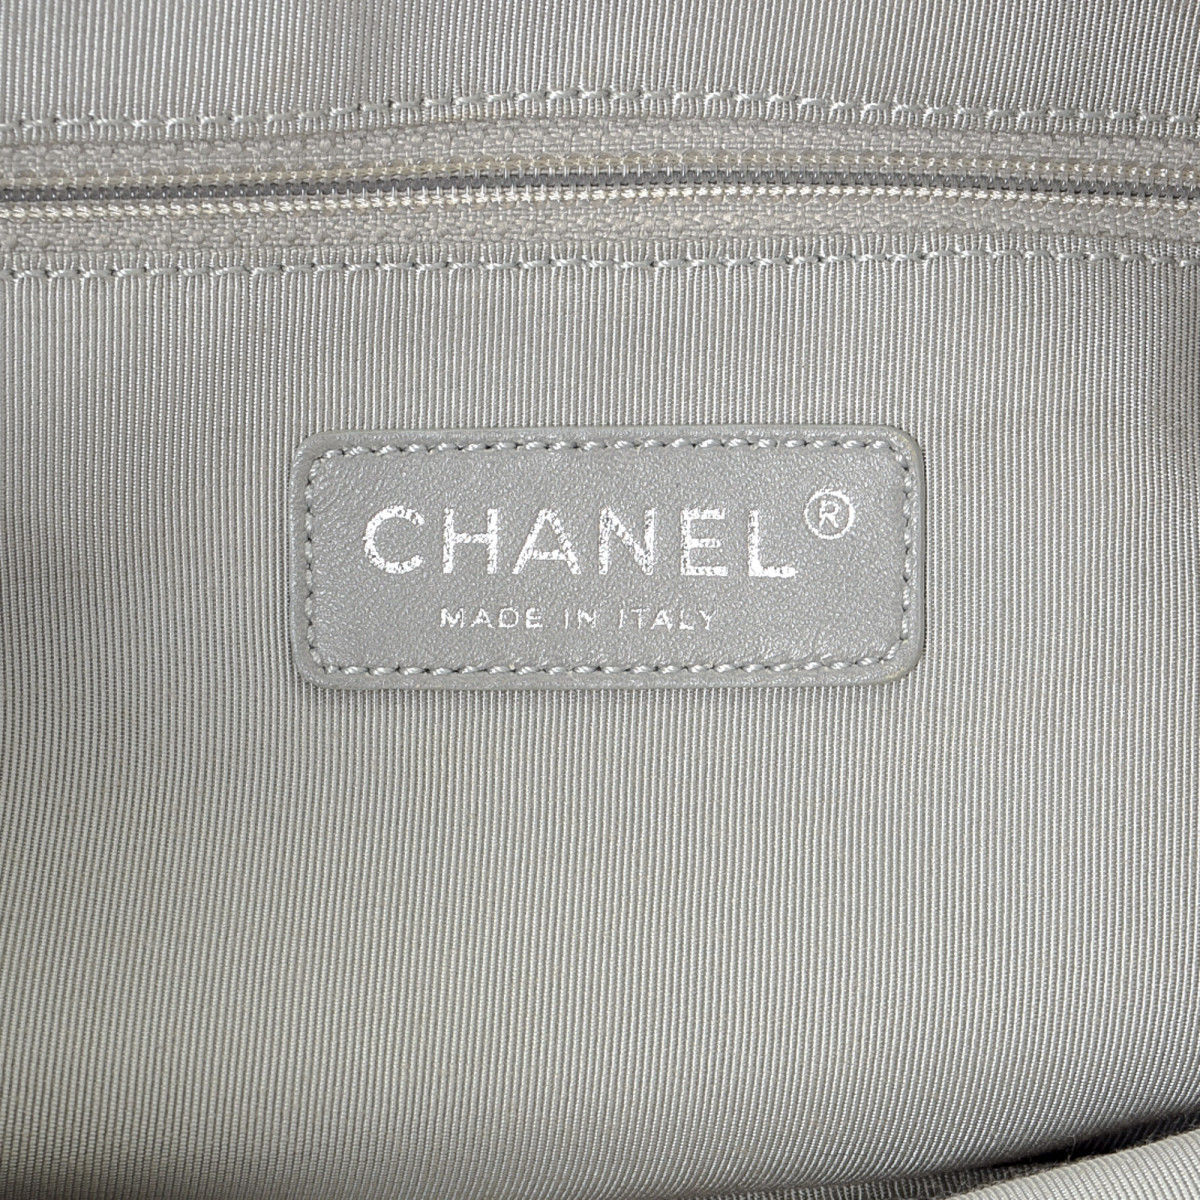 Chanel CC Shoulder Bag. Free Shipping. The authenticity of this vintage  Chanel CC shoulder bag is guaranteed by LXRandCo. This exquisite purse in  beautiful ... 12cfb91c13